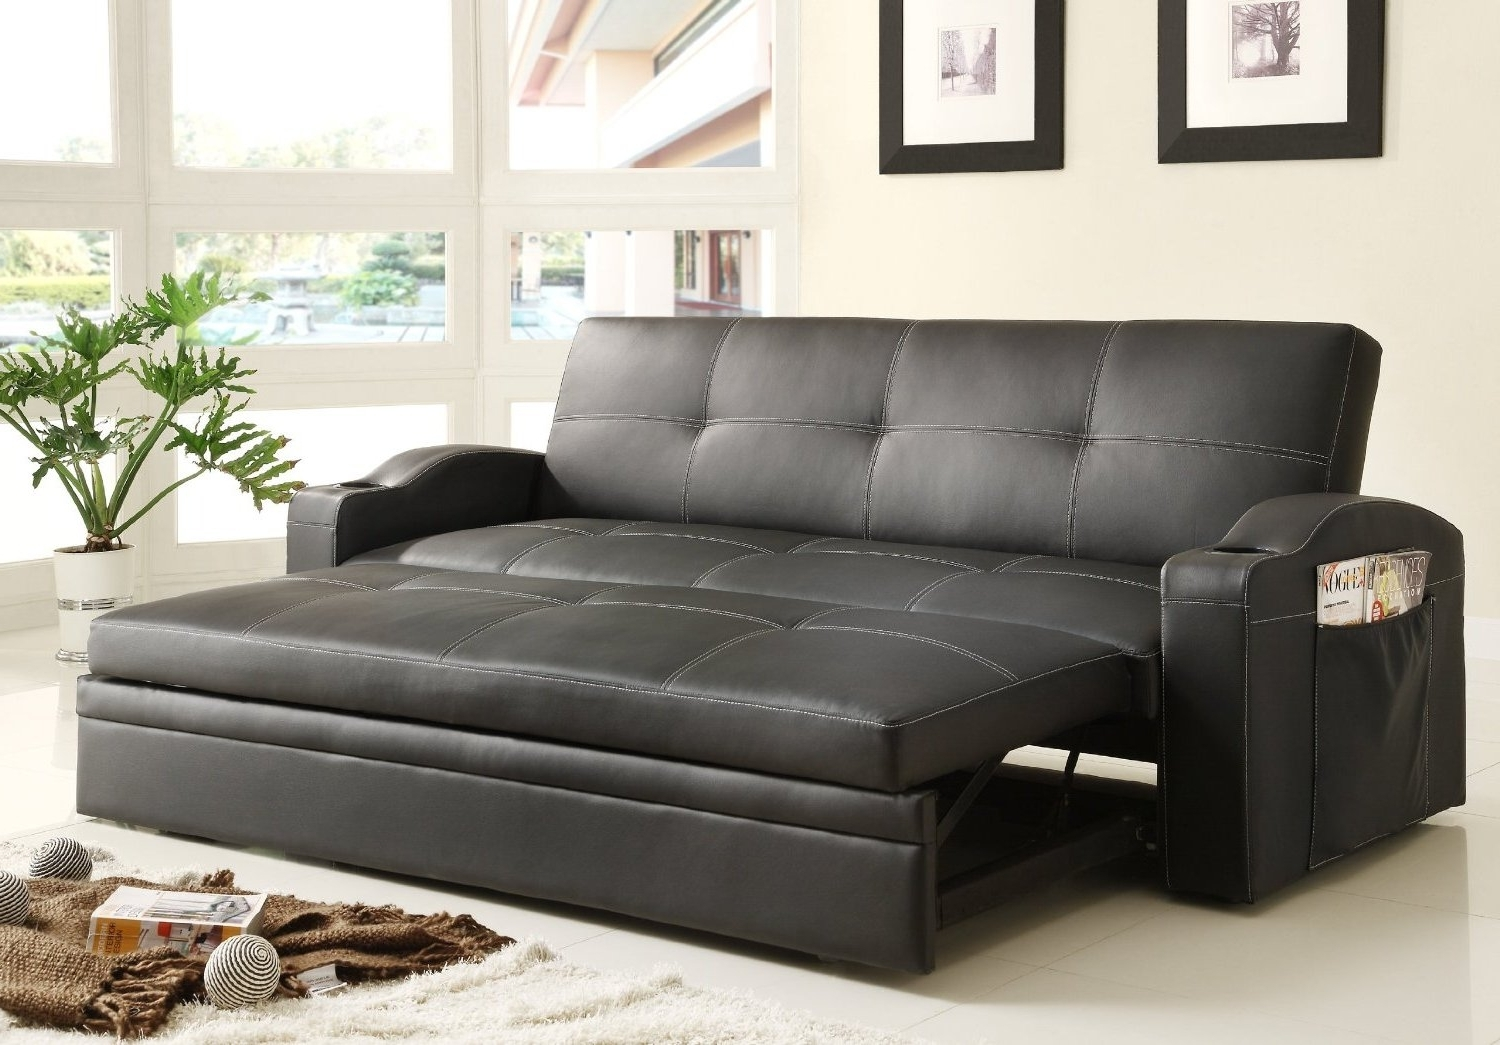 Most Current Adjustable Queen Size Sofa Bed Black Color Upholstered In Black Bi Pertaining To Queen Size Sofas (View 8 of 20)